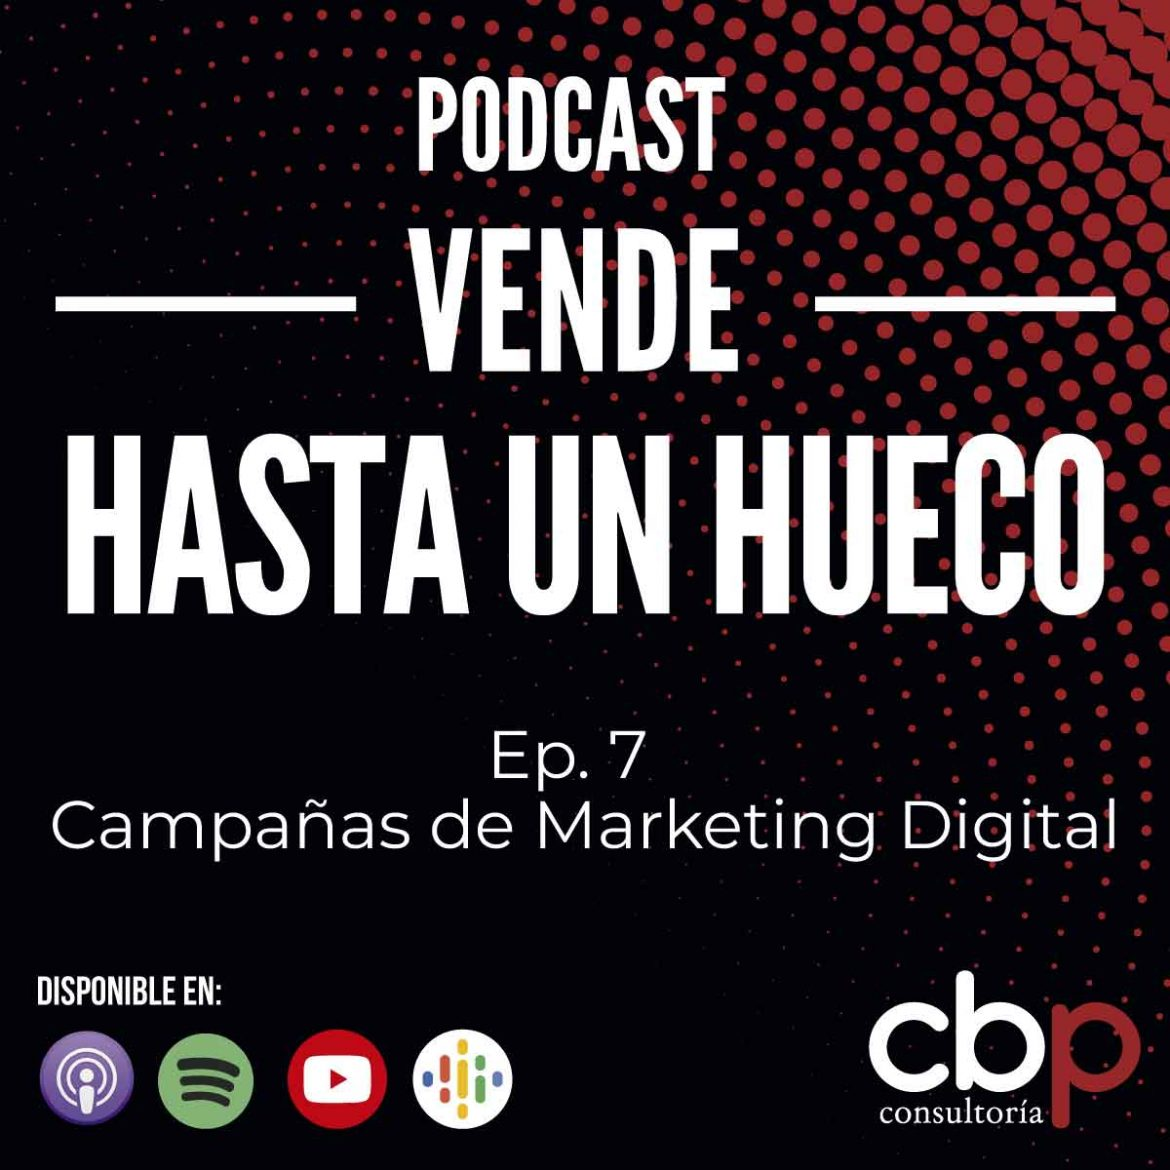 Episodio 7 - Vende hasta un hueco